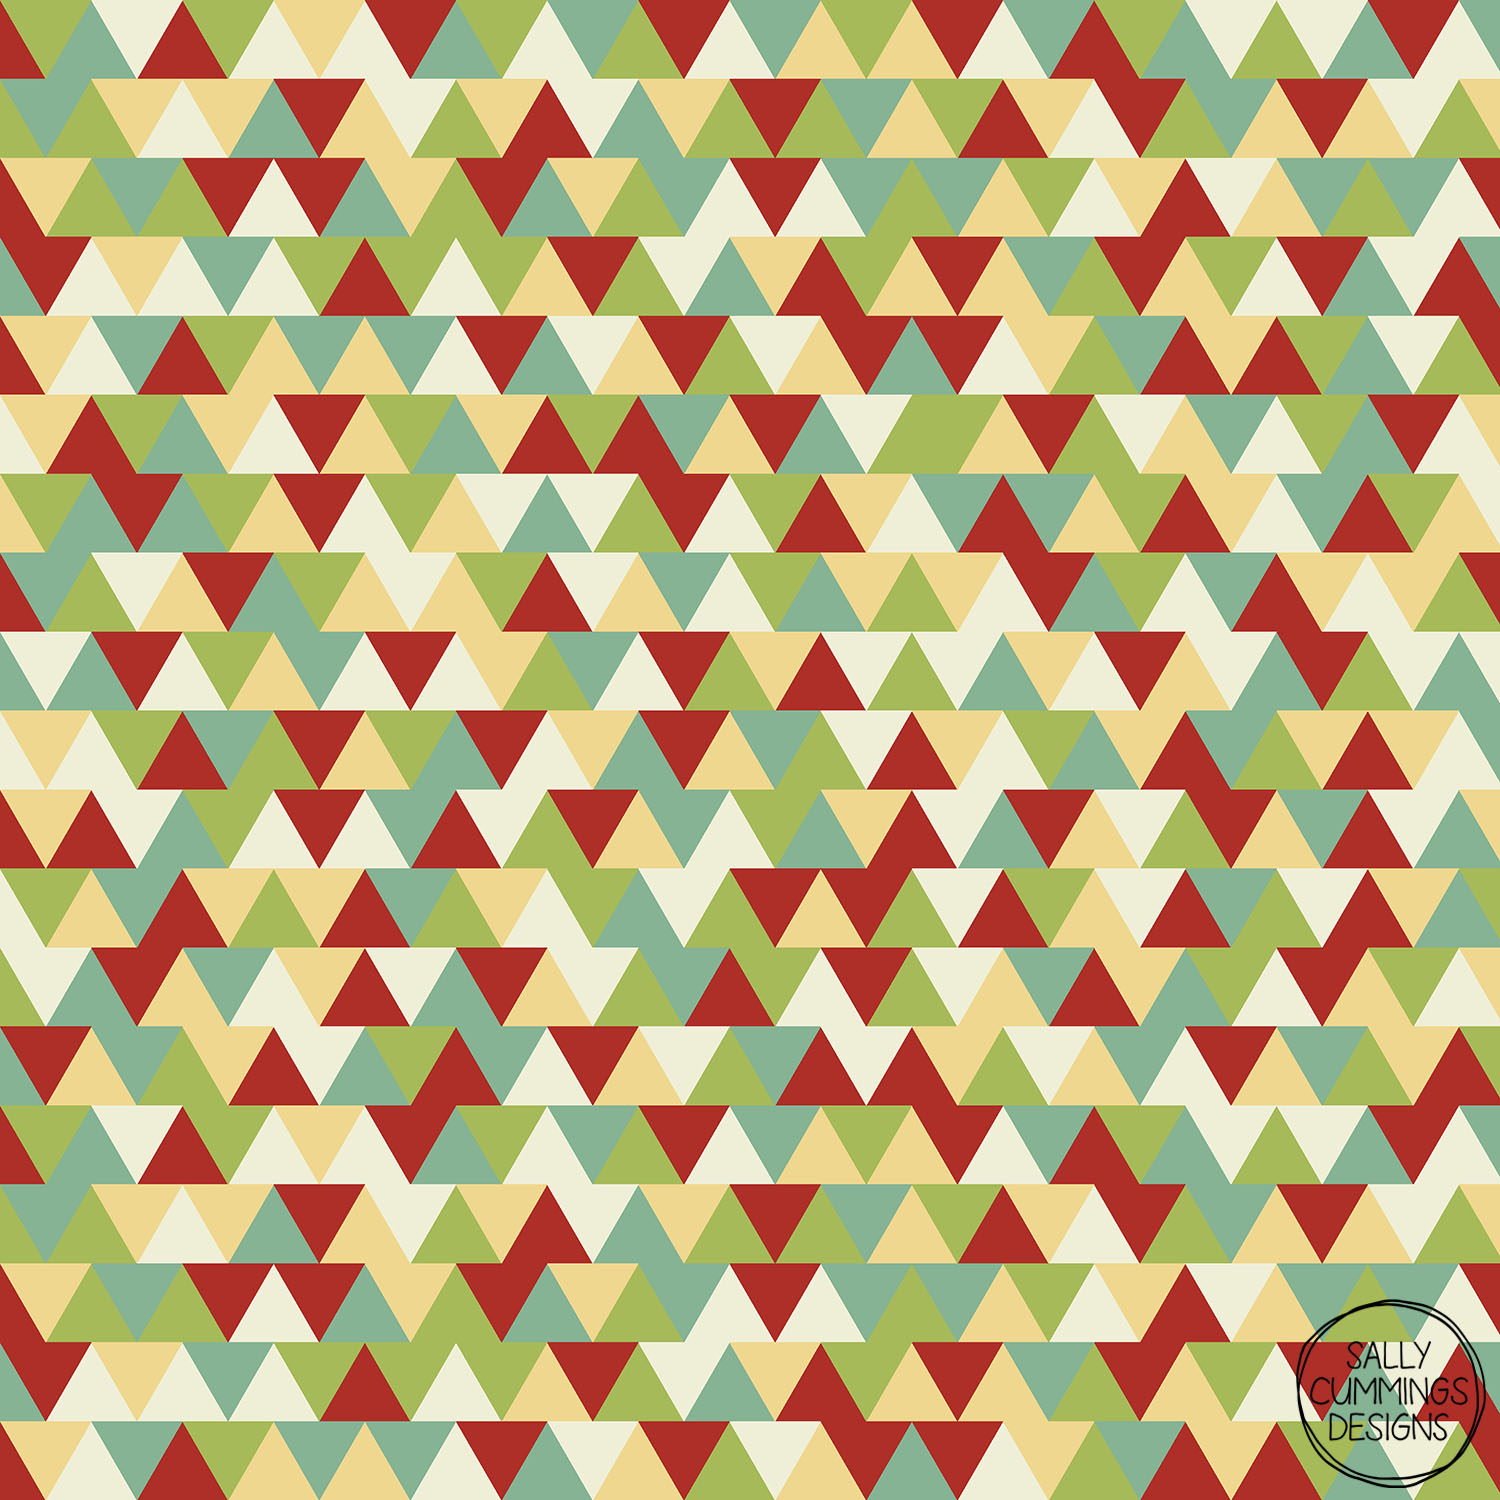 Sally Cummings Designs - Retro Christmas Triangles Pattern